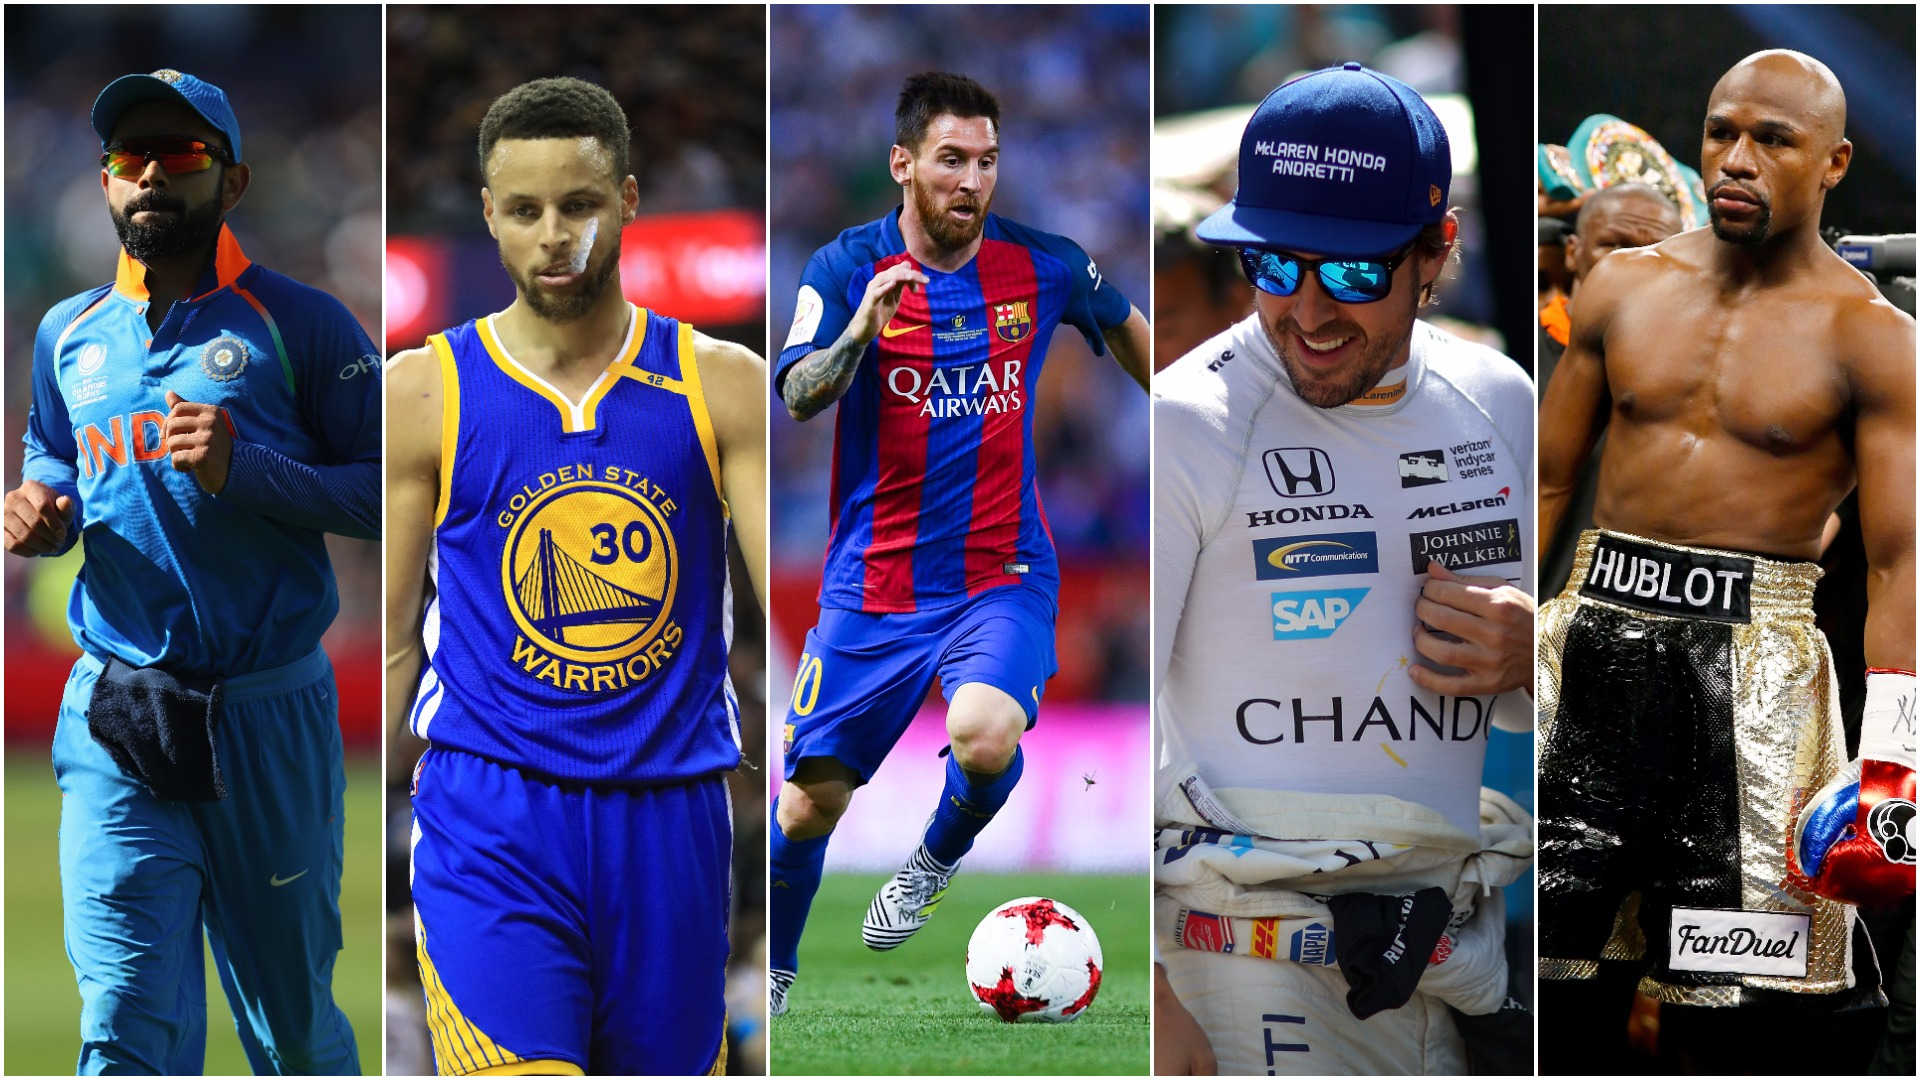 Messi 2021: How the Barcelona star's new paypacket compares to Curry, Kohli, Mayweather and others